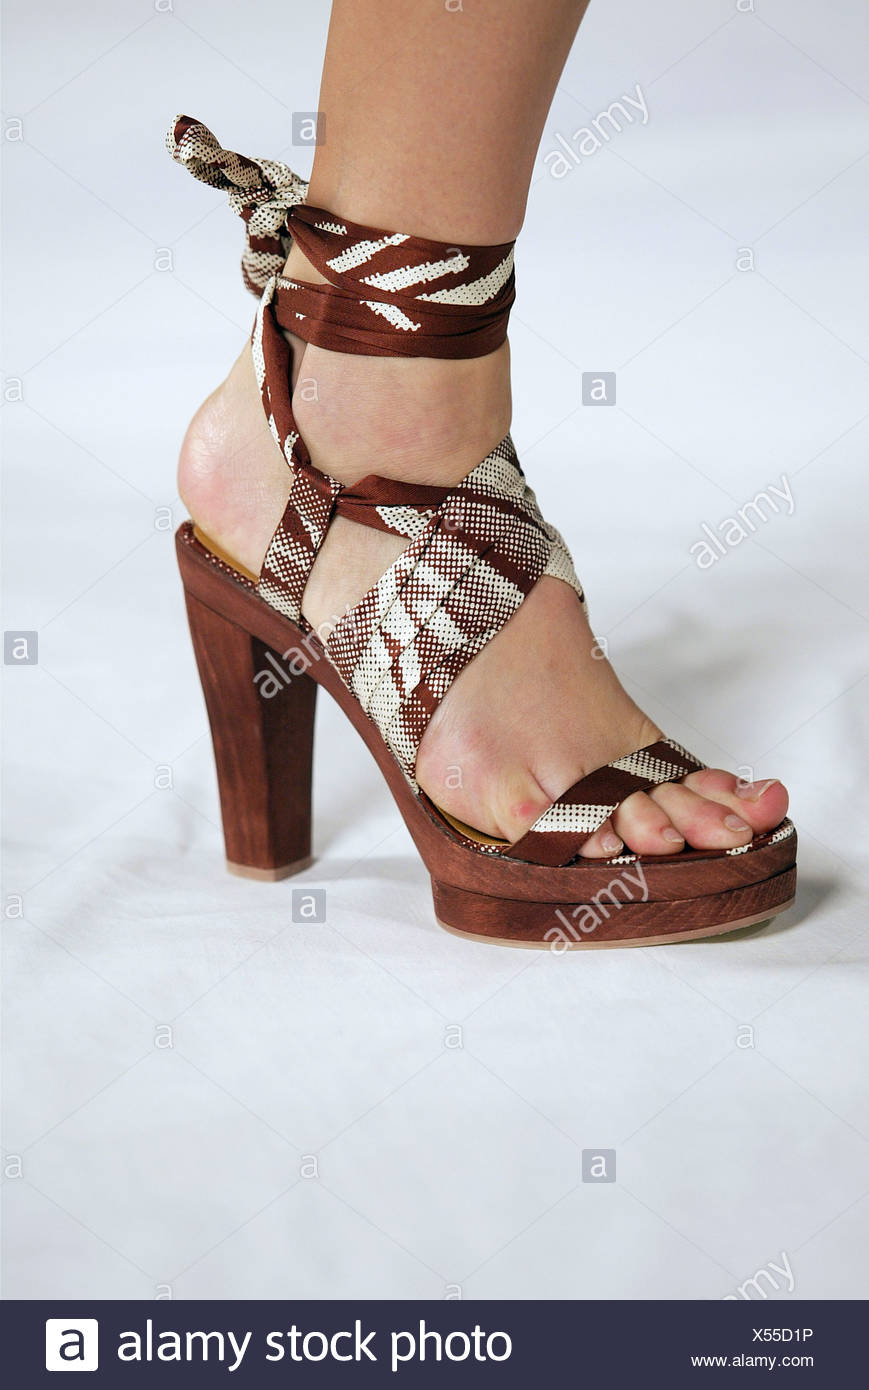 Hermes Paris Ready To Wear S Crop Of Female Models Foot Wearing Sandal Strape On Cream Wooden Sandals Brown And Fabric Straps Ankle Strap